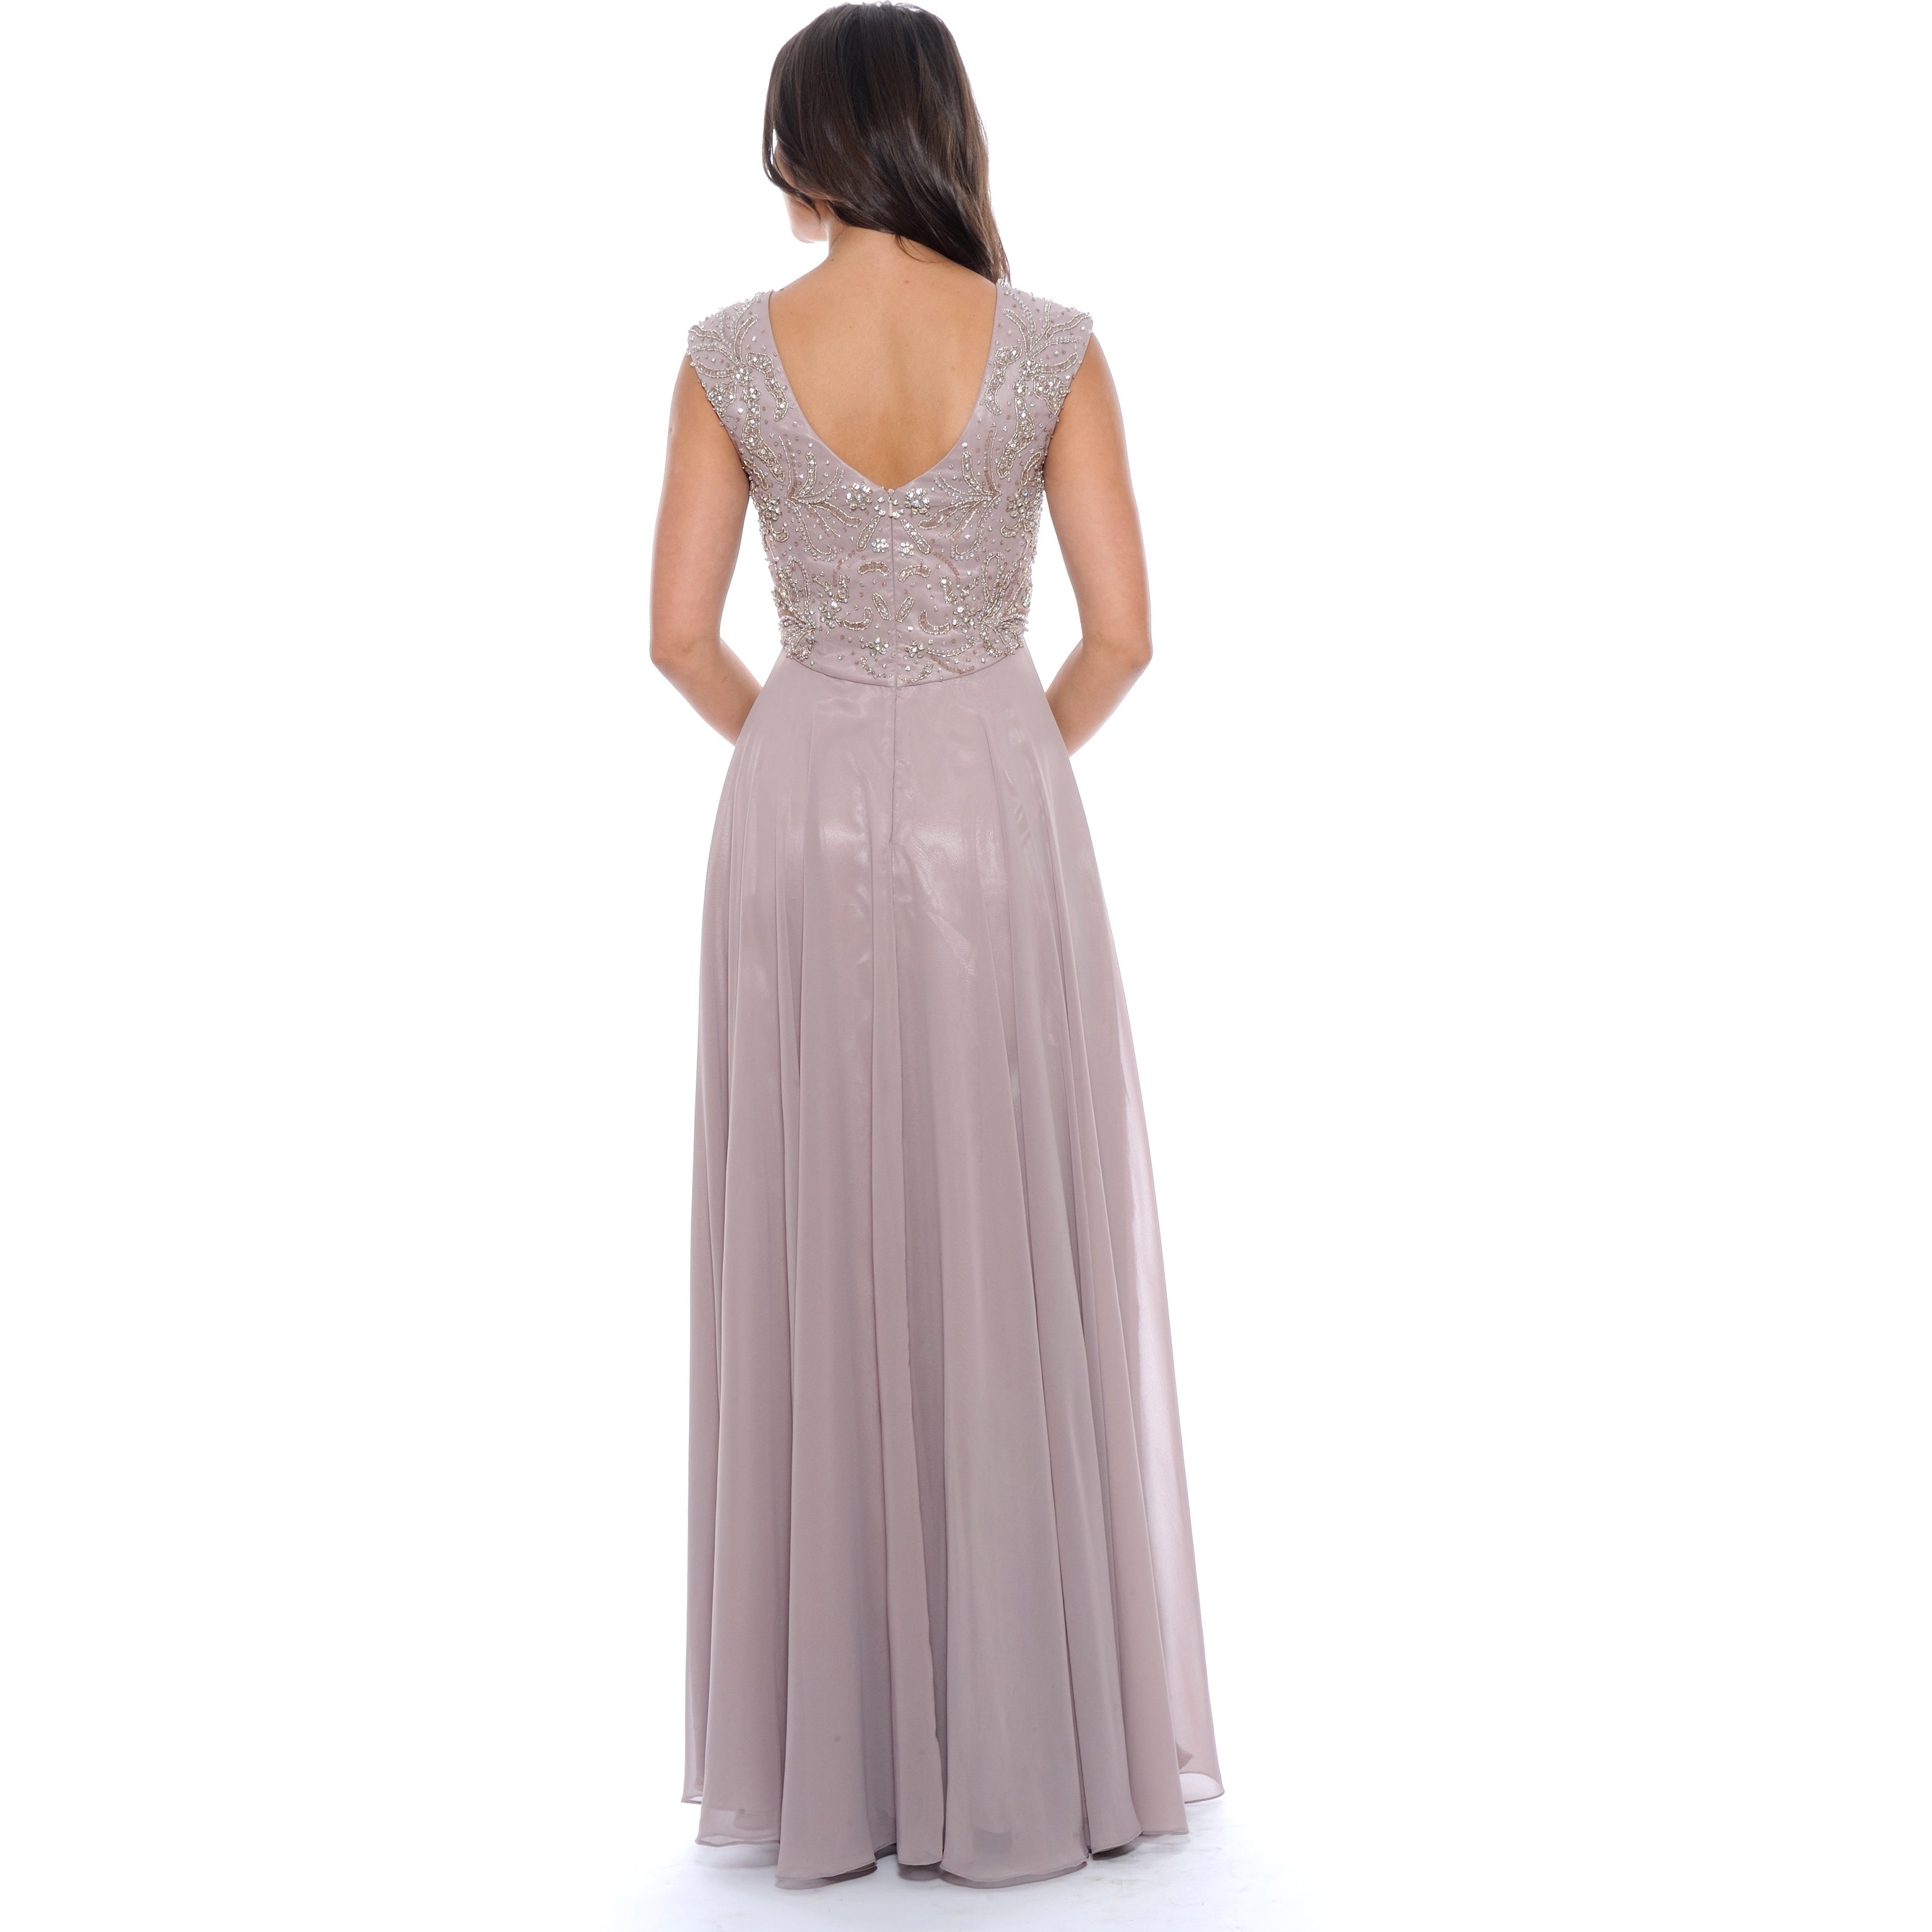 e7a0718031ed Shop Decode 1.8 Women's Mauve Beaded Empire Evening Gown - Free Shipping  Today - Overstock - 10340936